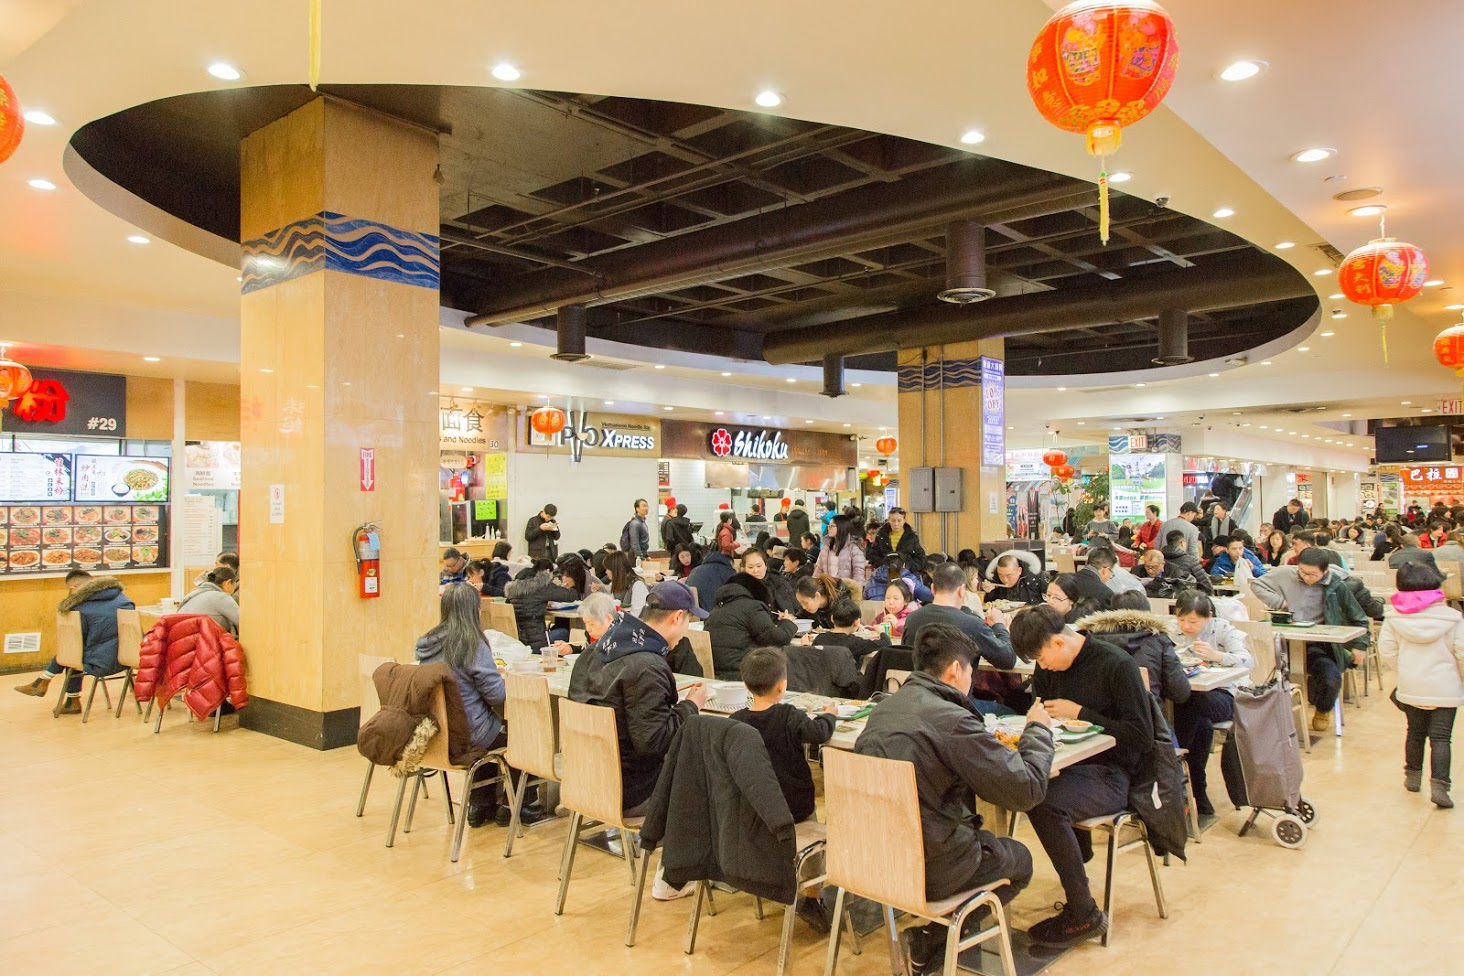 Food Court Chinese Noodles